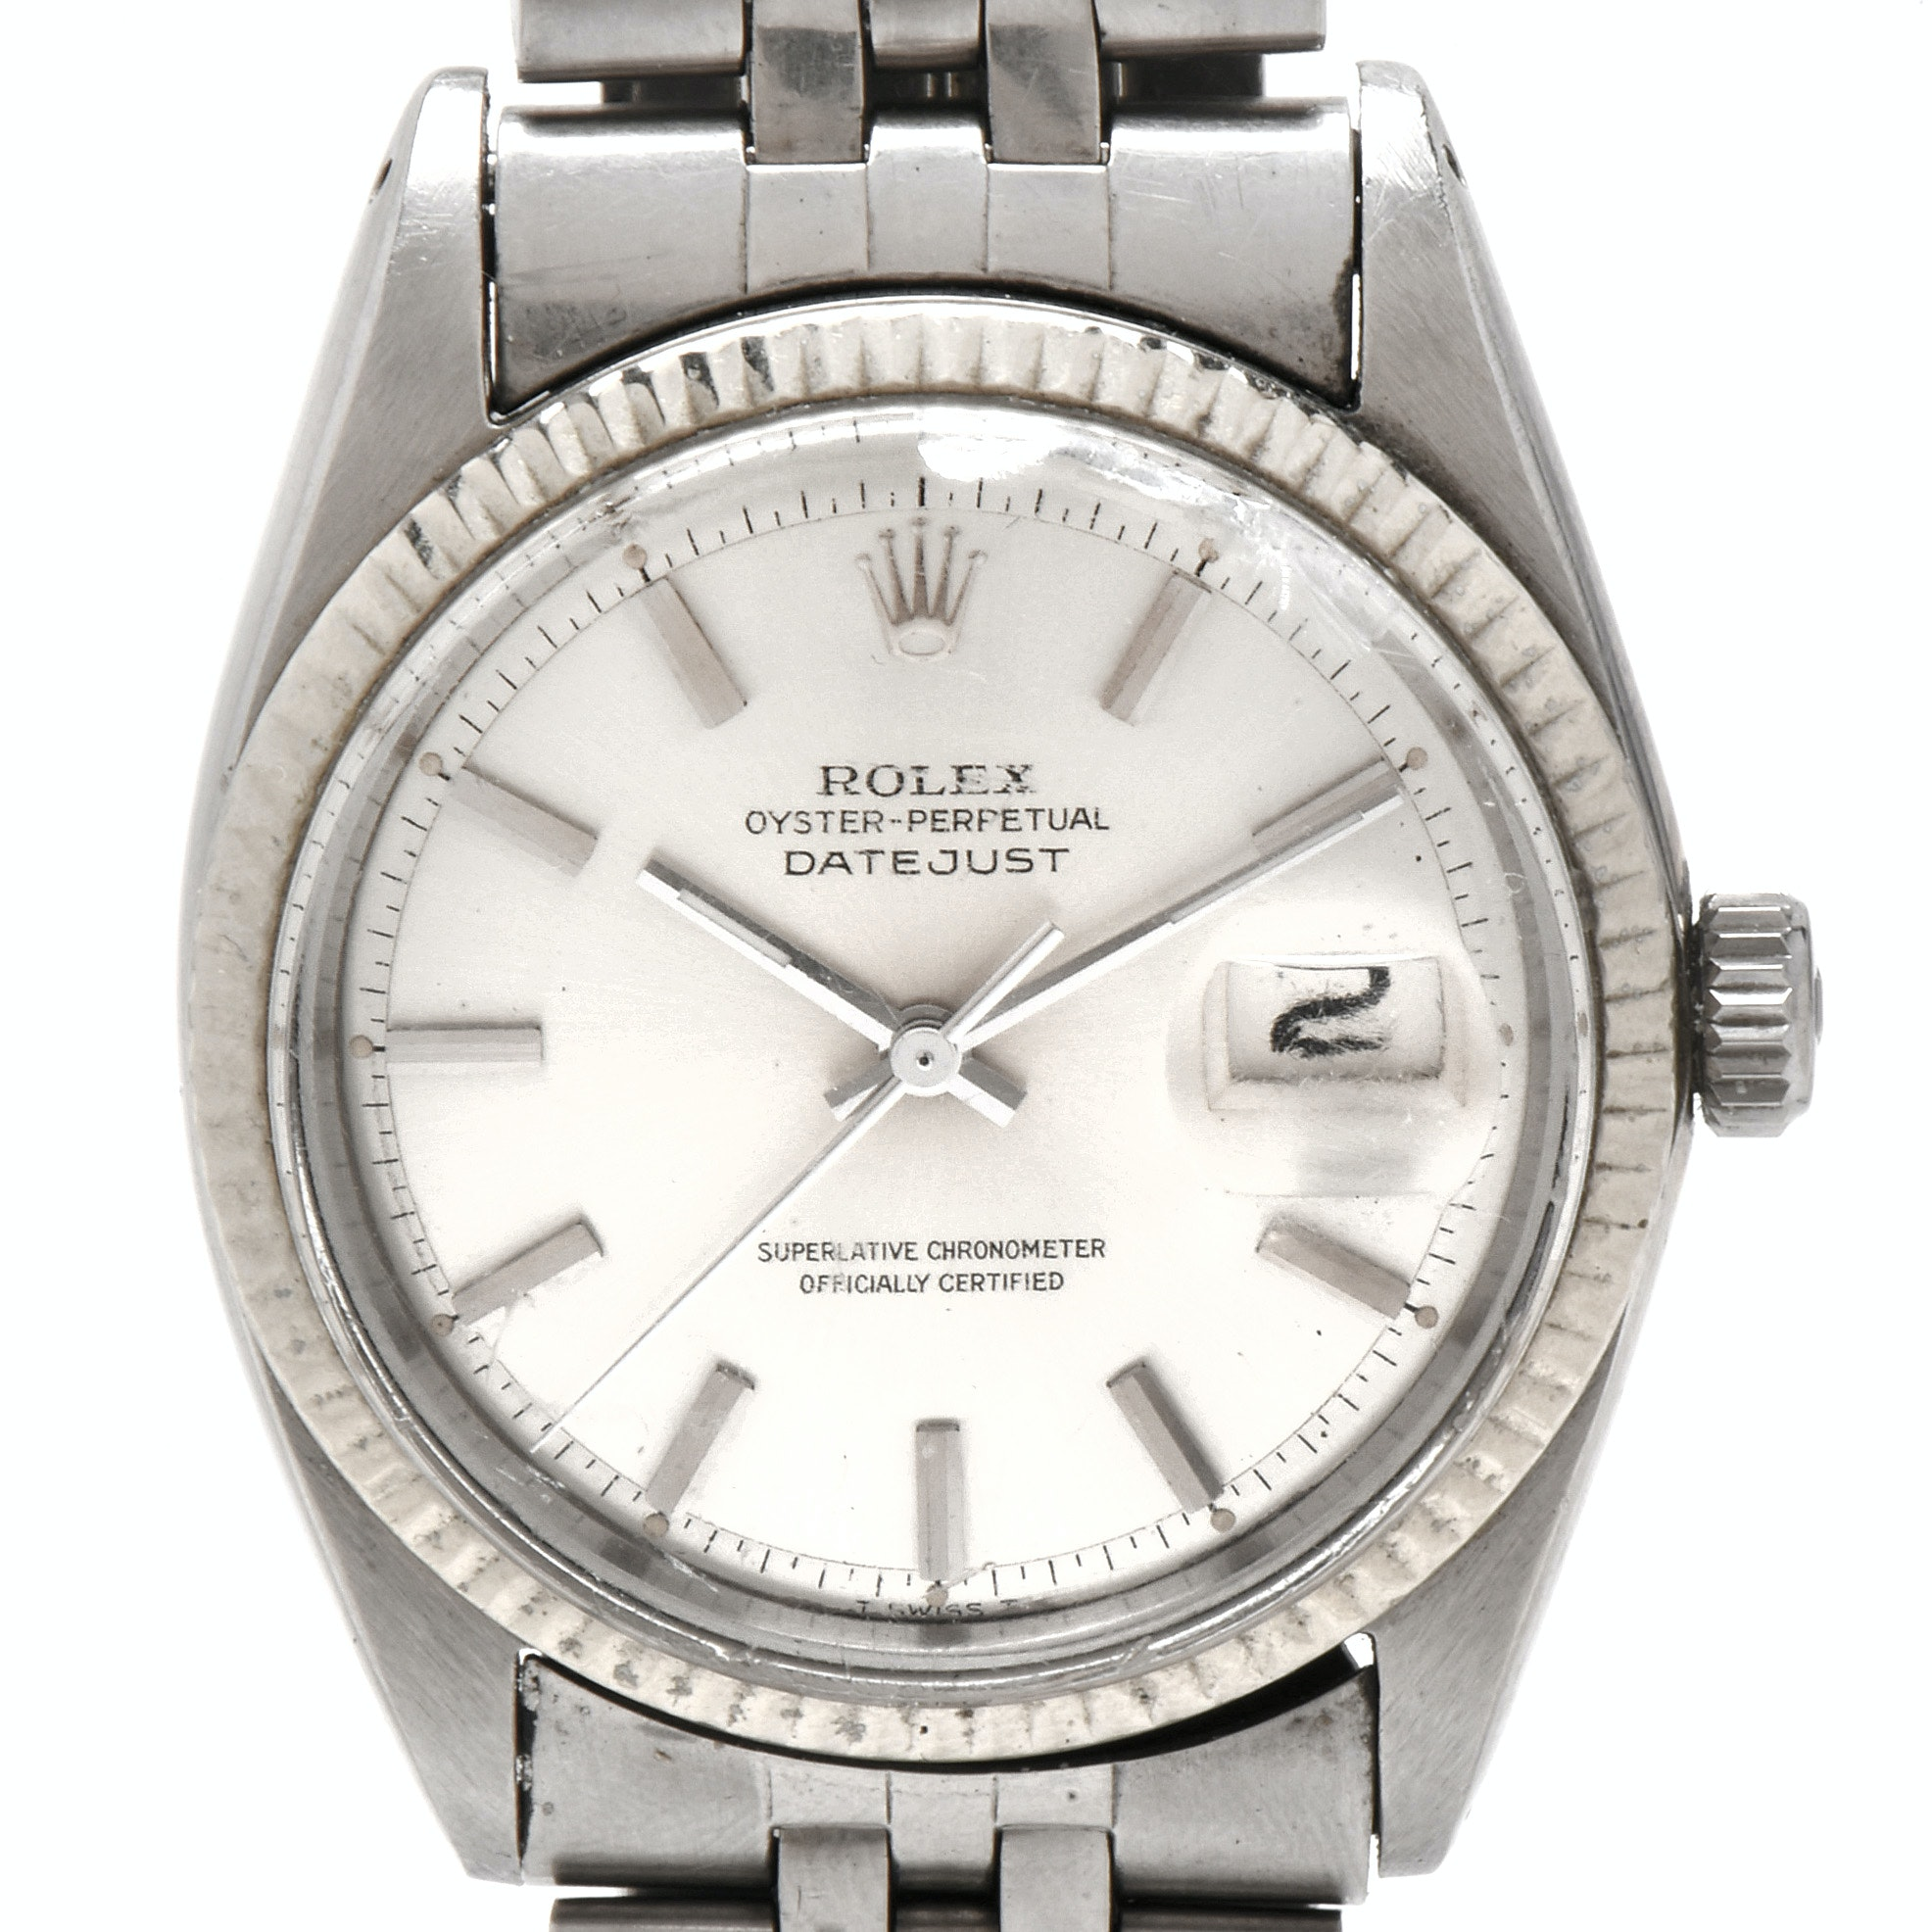 Circa 1967 Rolex Stainless Steel and 14K White Gold Wristwatch